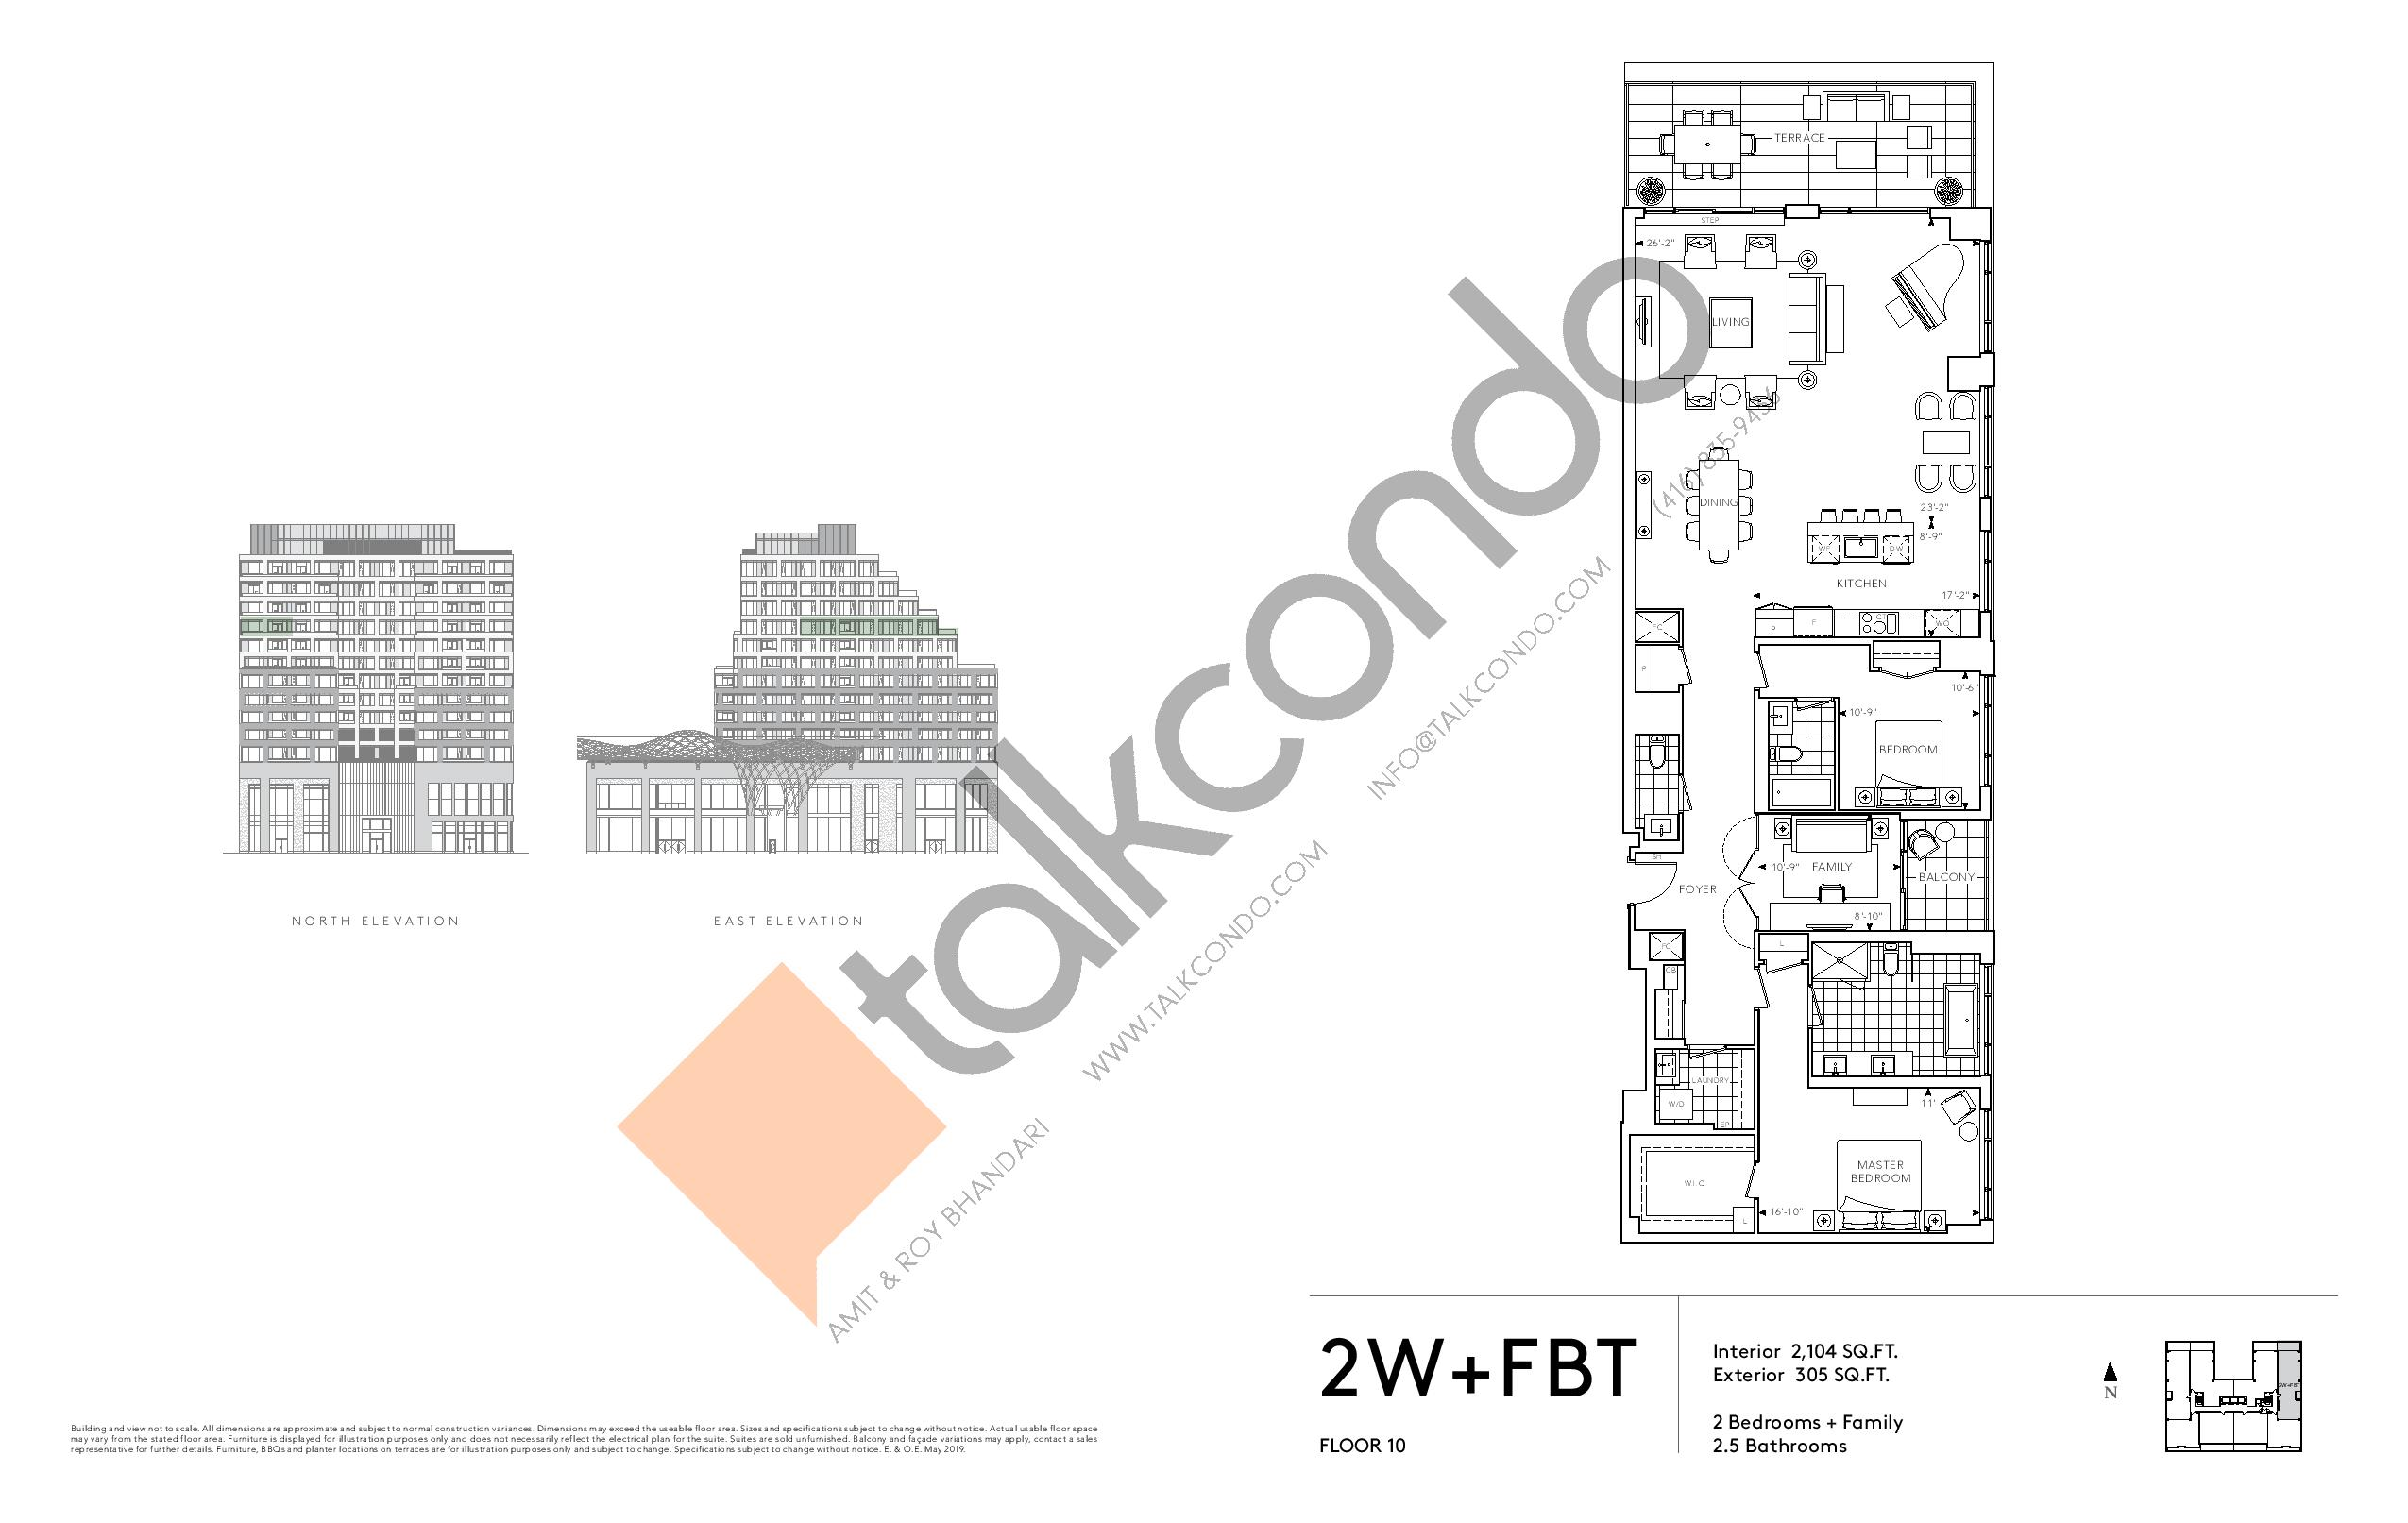 2W+FBT - Signature Series Floor Plan at Tridel at The Well Condos - 2104 sq.ft